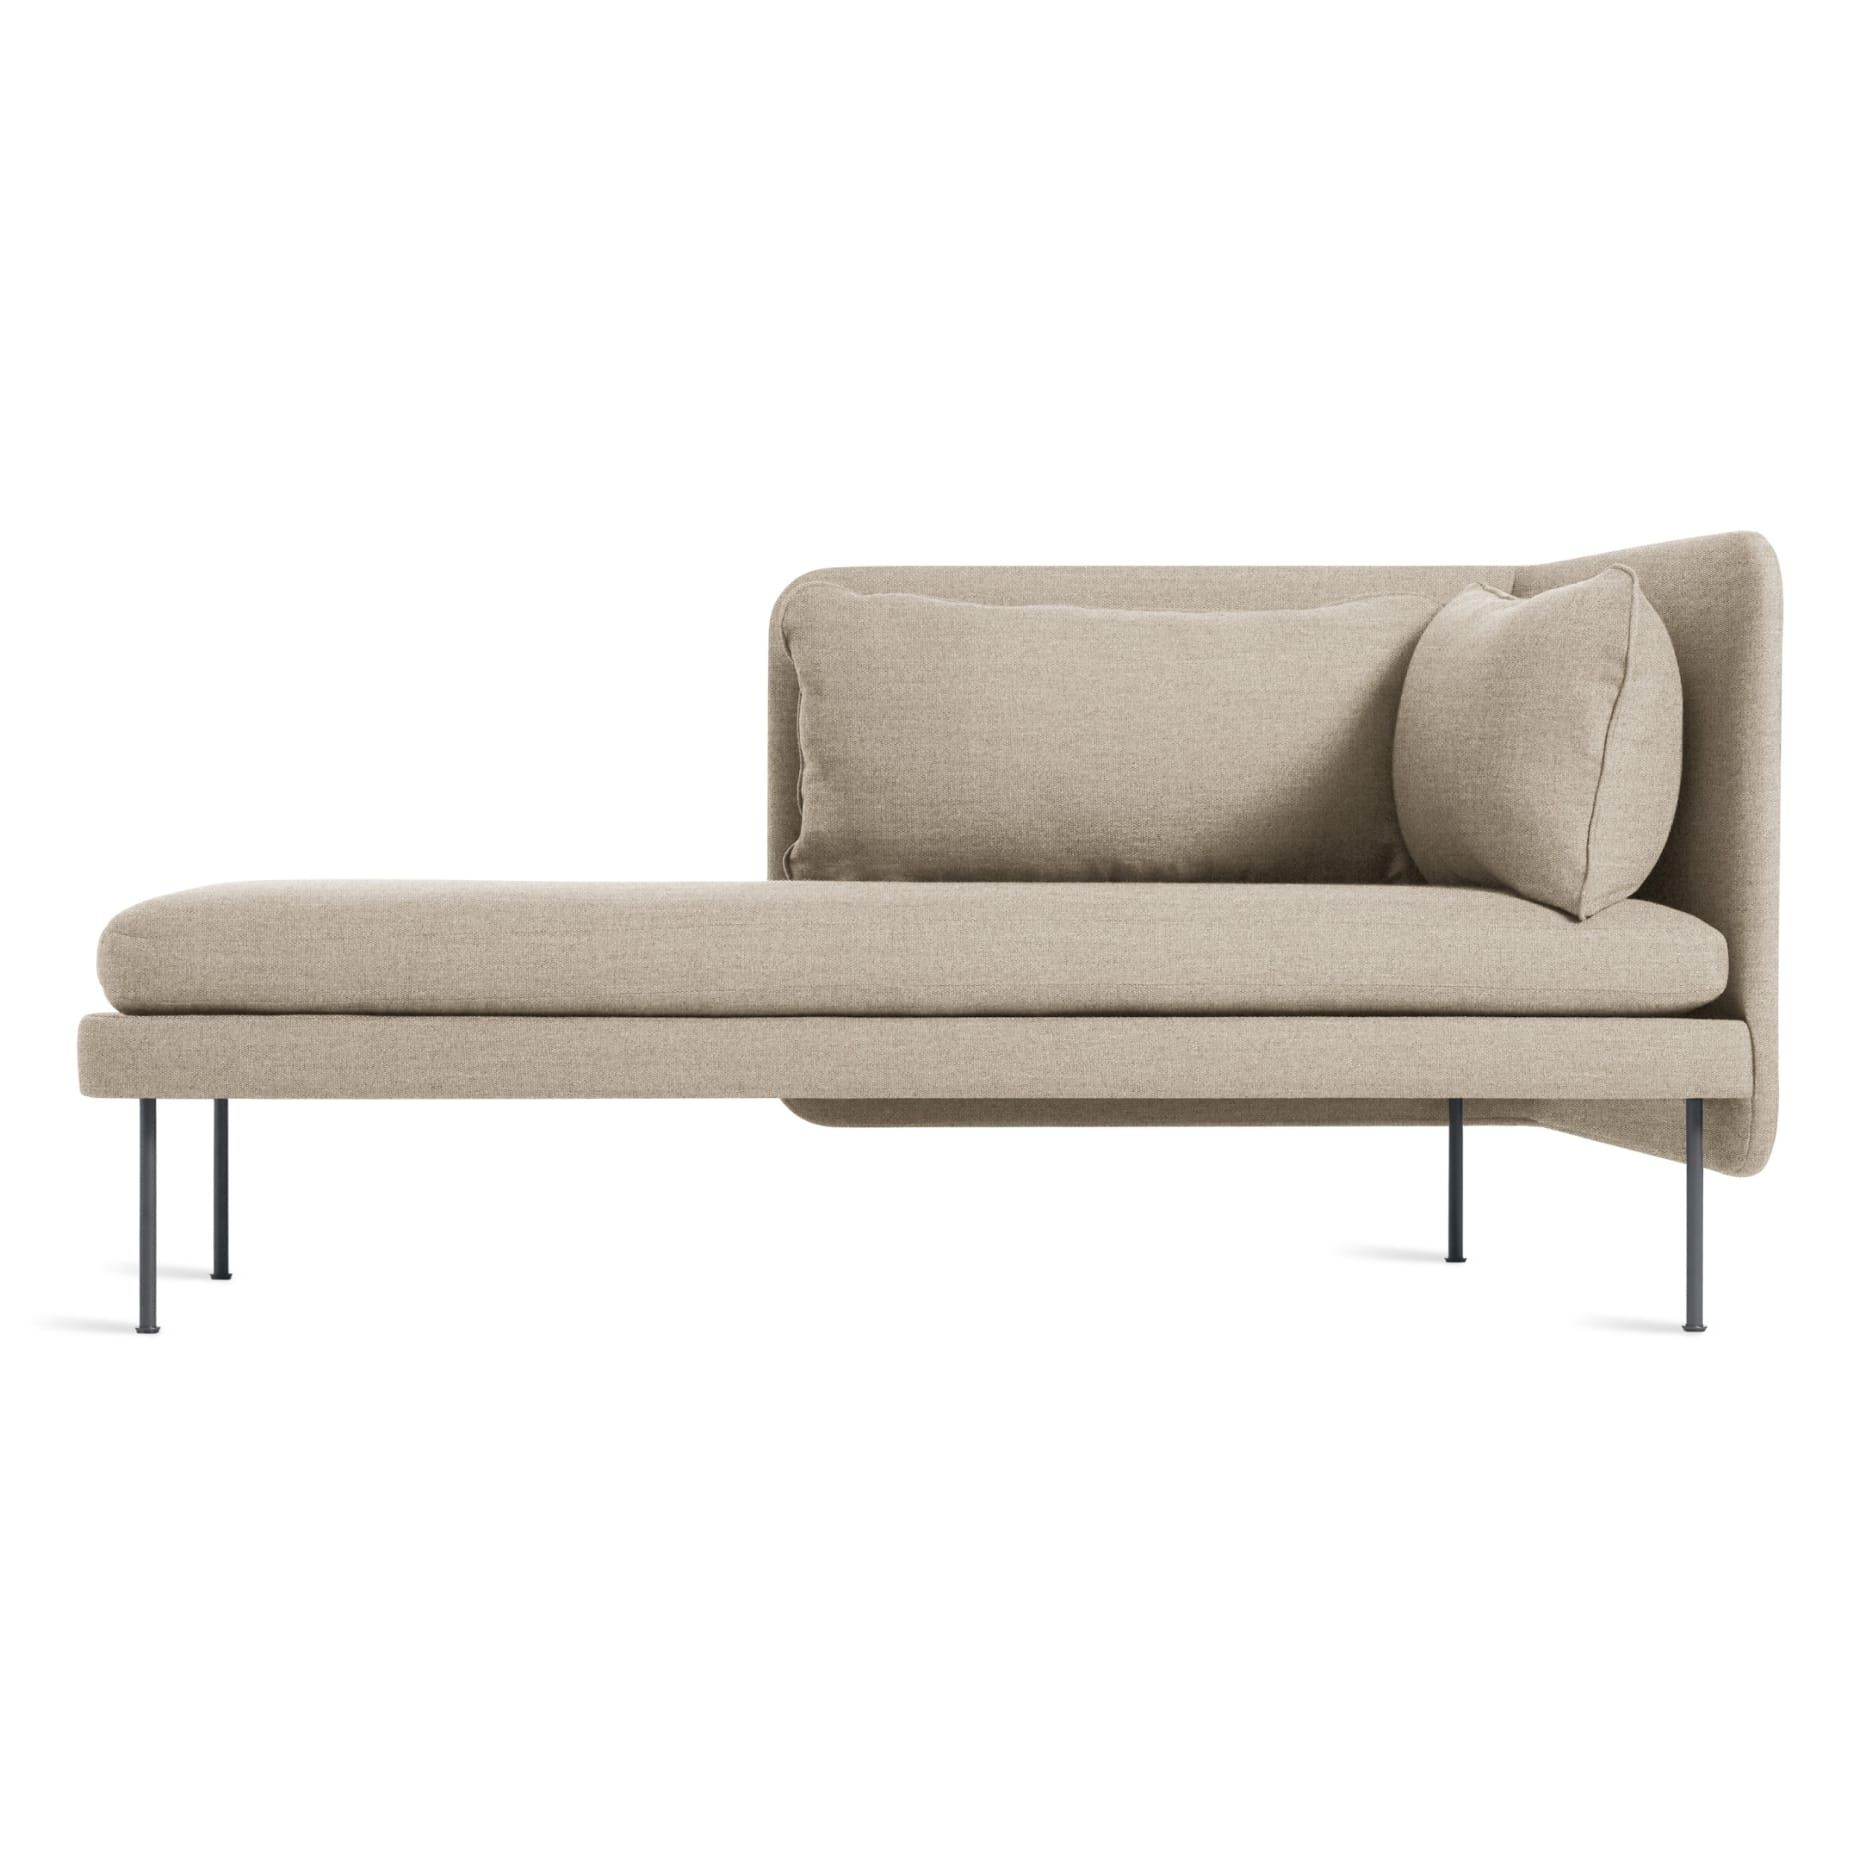 Bloke Chaise With Images Modern Chaise Lounge Chaise Chaise Lounge Sofa